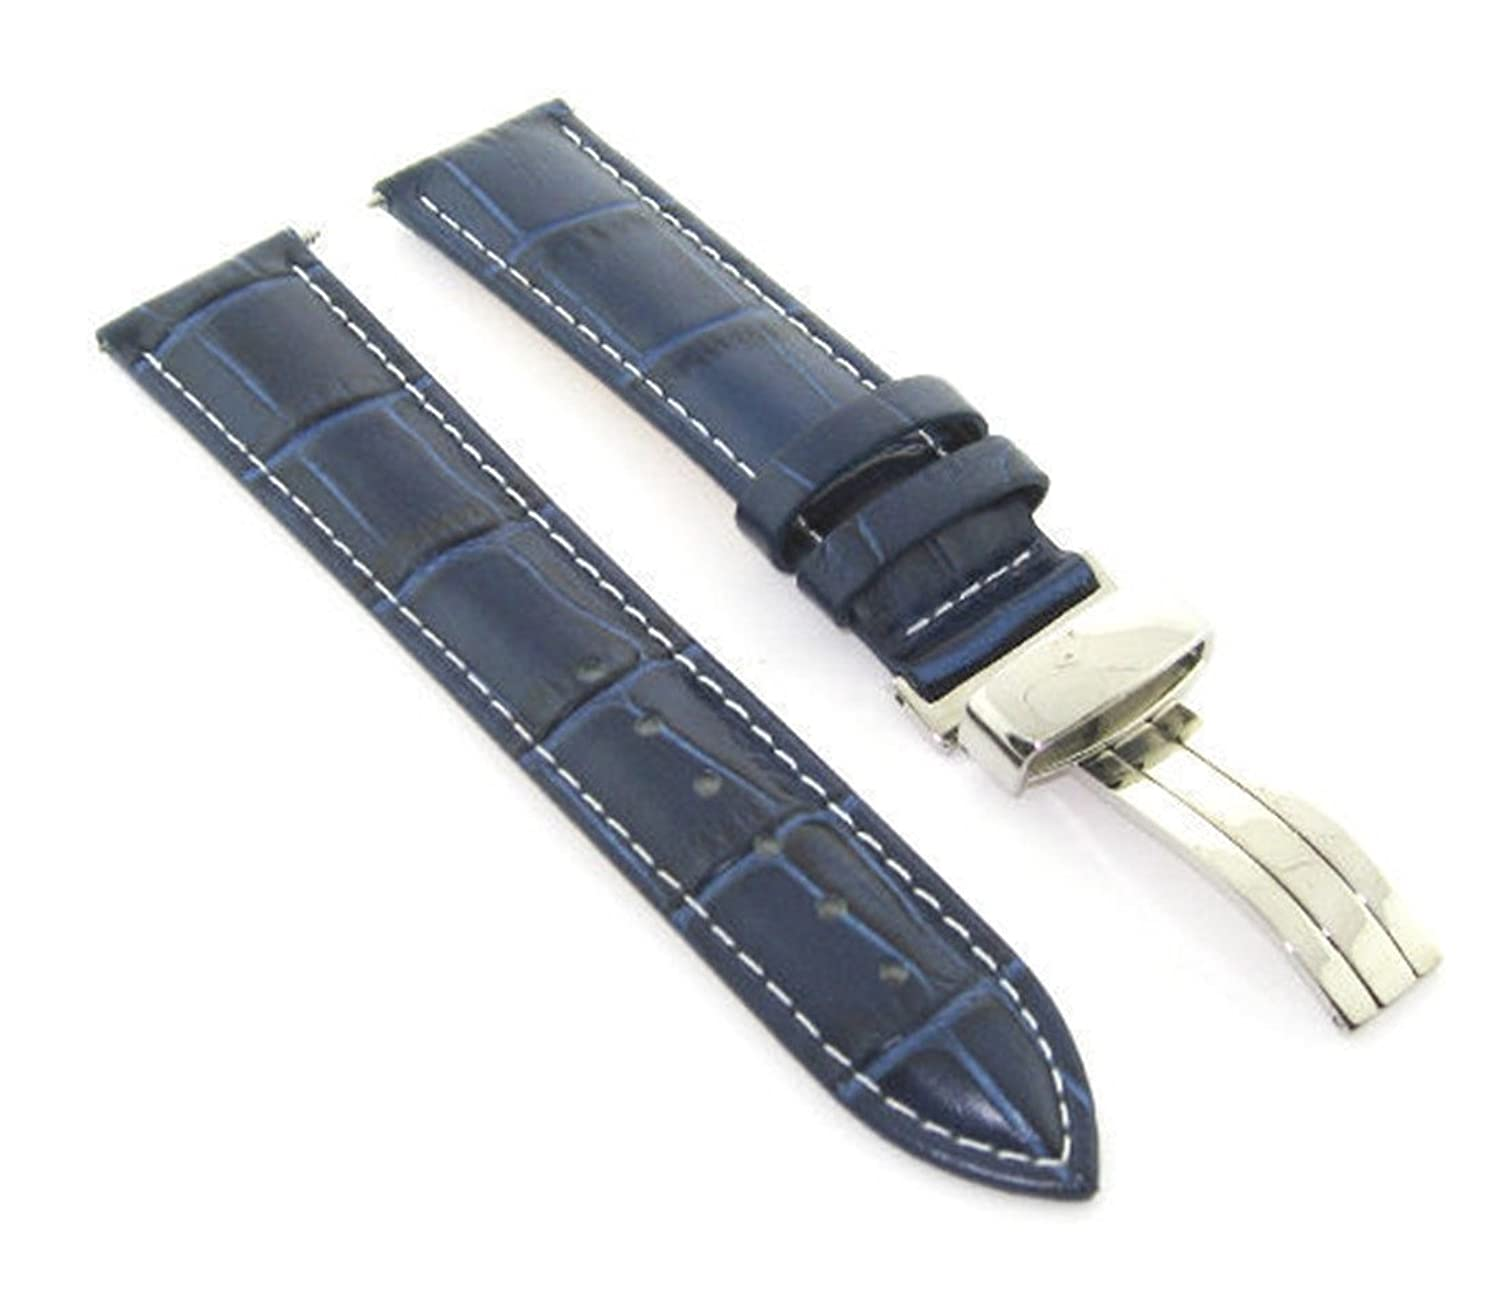 17 – 18 – 19 – 20 – 21 – 22 – 23 – 24 mmレザーバンドストラップ導入Clasp for emporio armani # 1 20mm Blue with white stitching  Blue with white stitching 20mm B07DHMHTDS